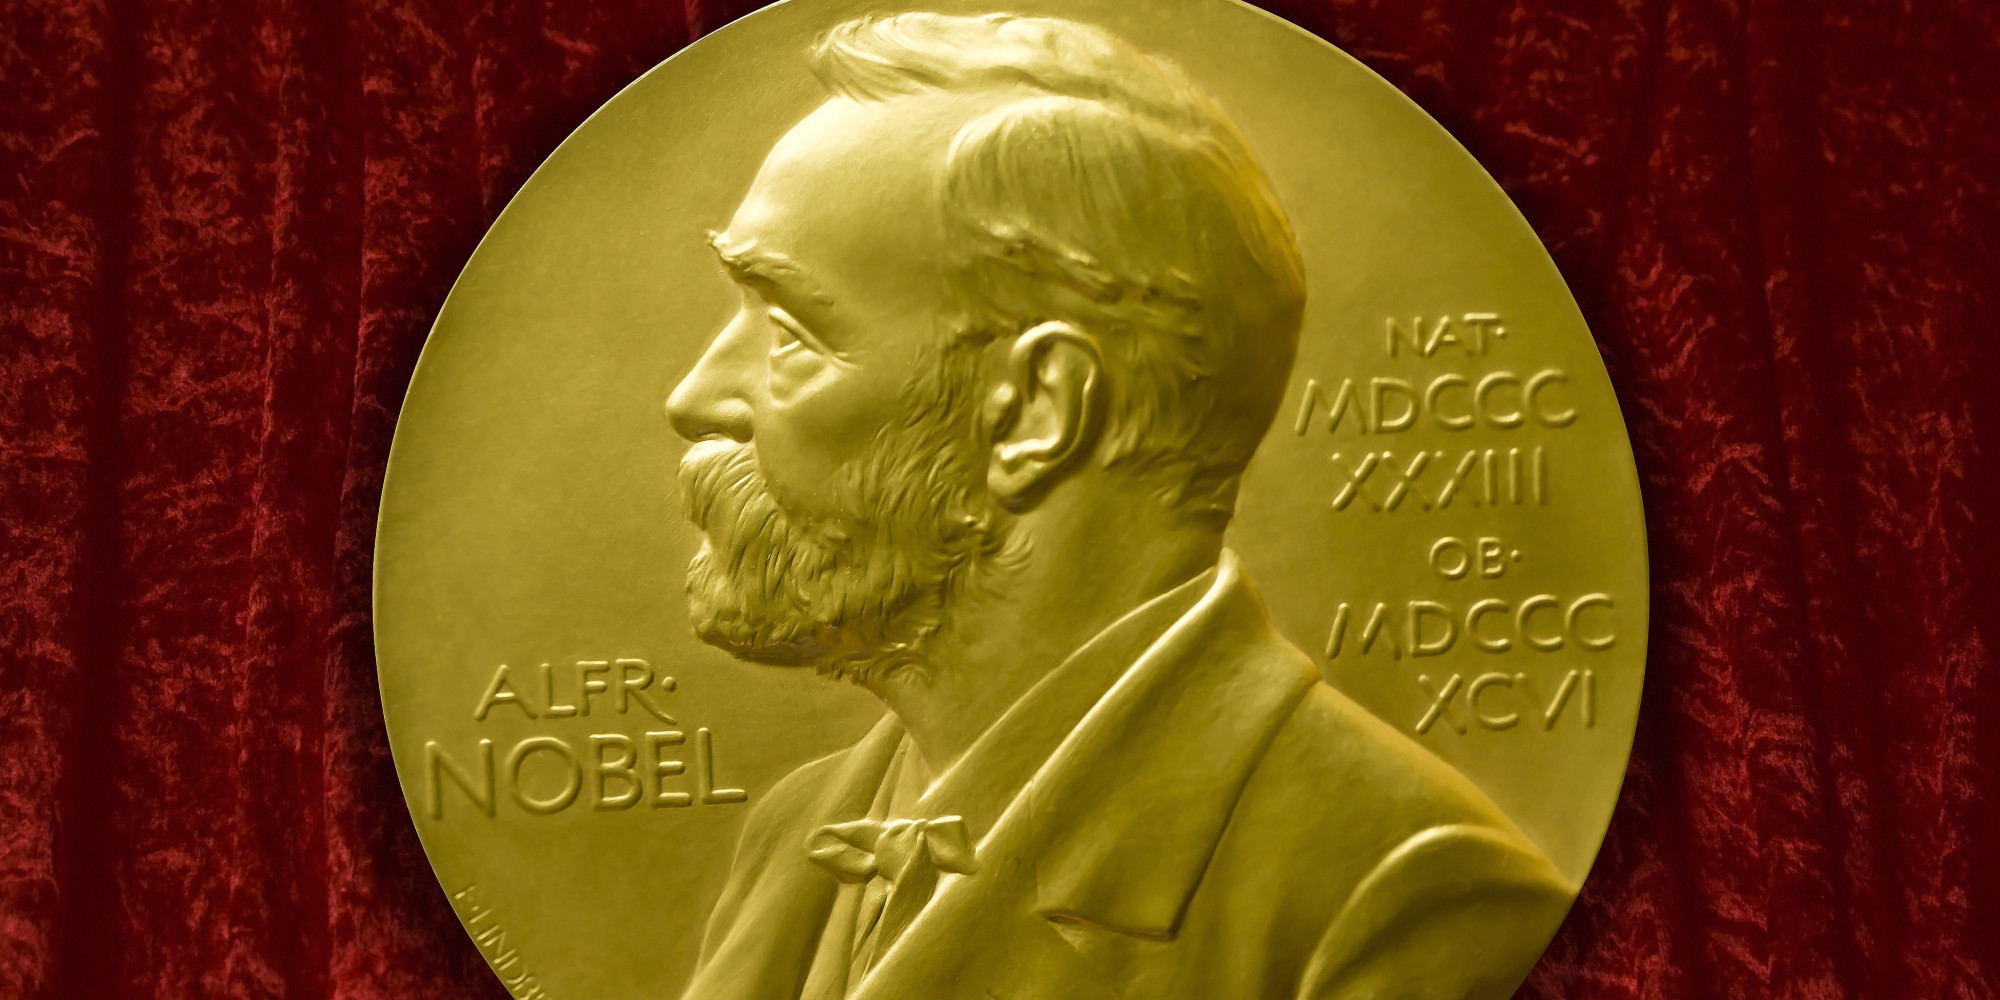 nobel prize The nobel prize in physics 2018 the 2018 nobel prize in physics has not been awarded yet it will be announced on tuesday 2 october, 11:45 am at the.